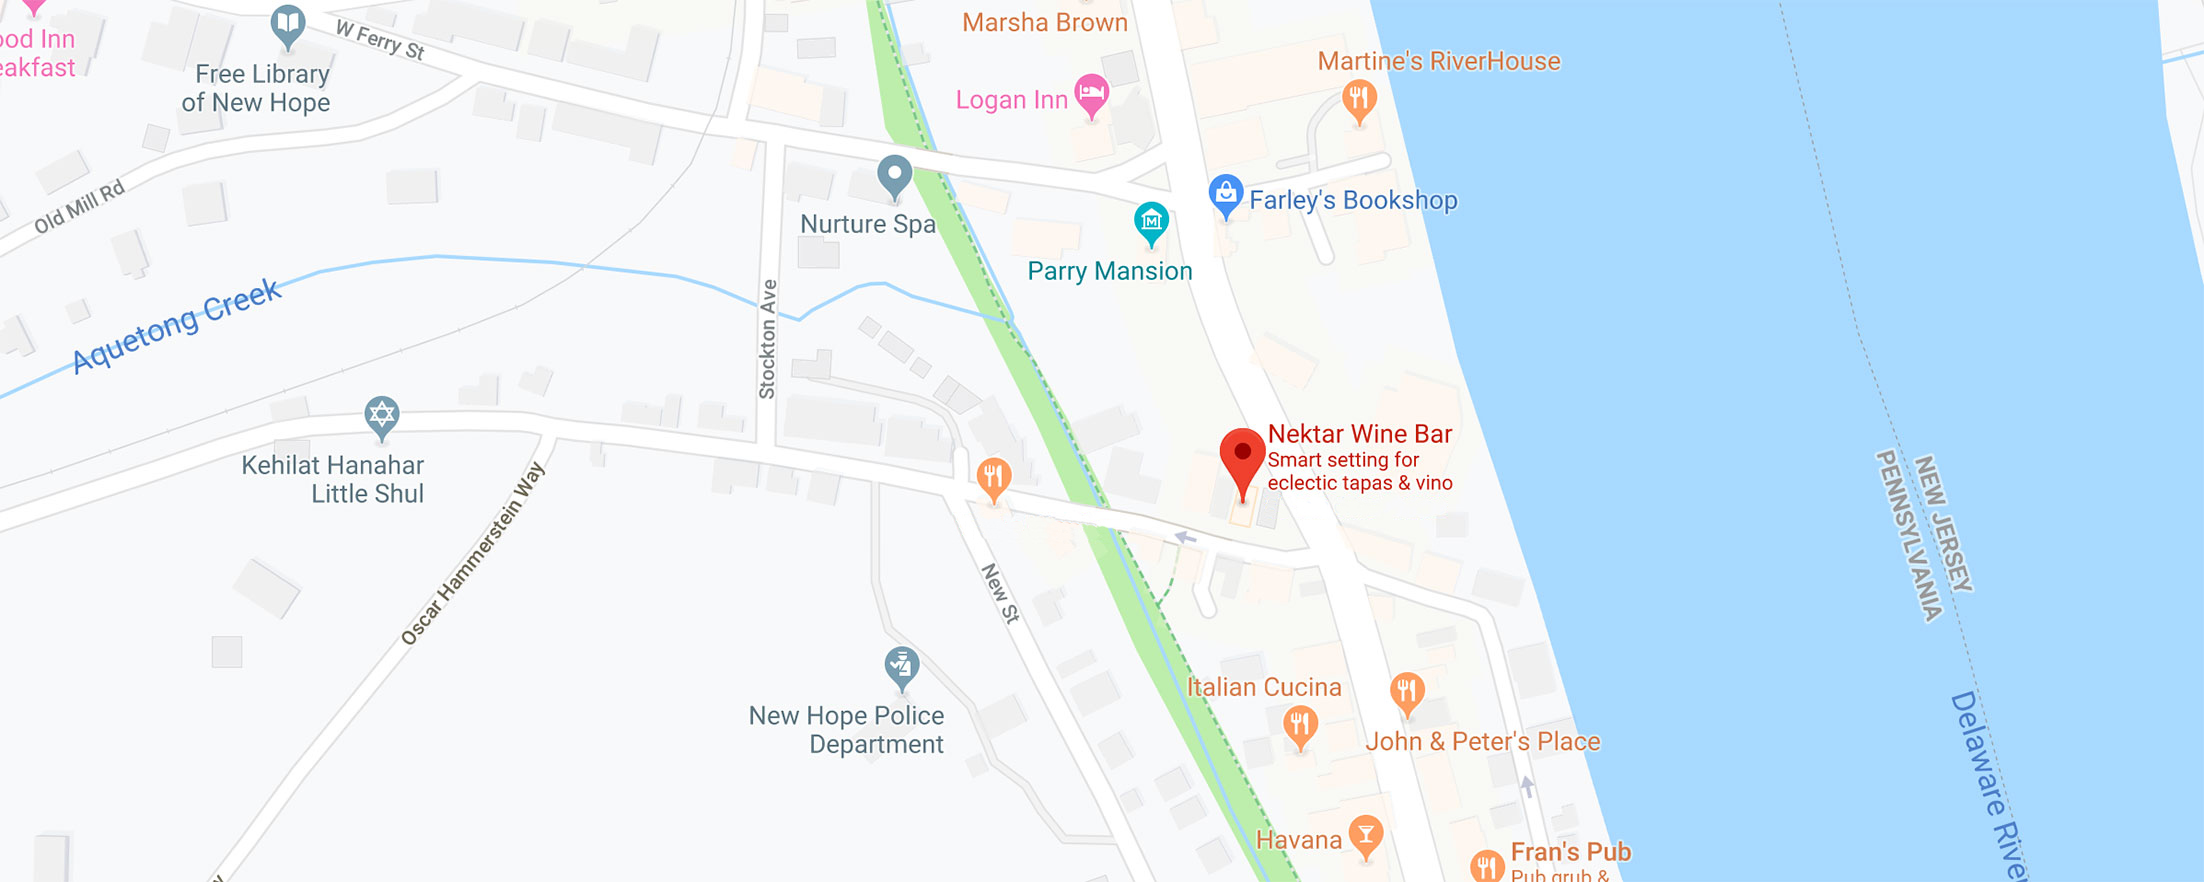 New Hope map with Nektar Wine Bar